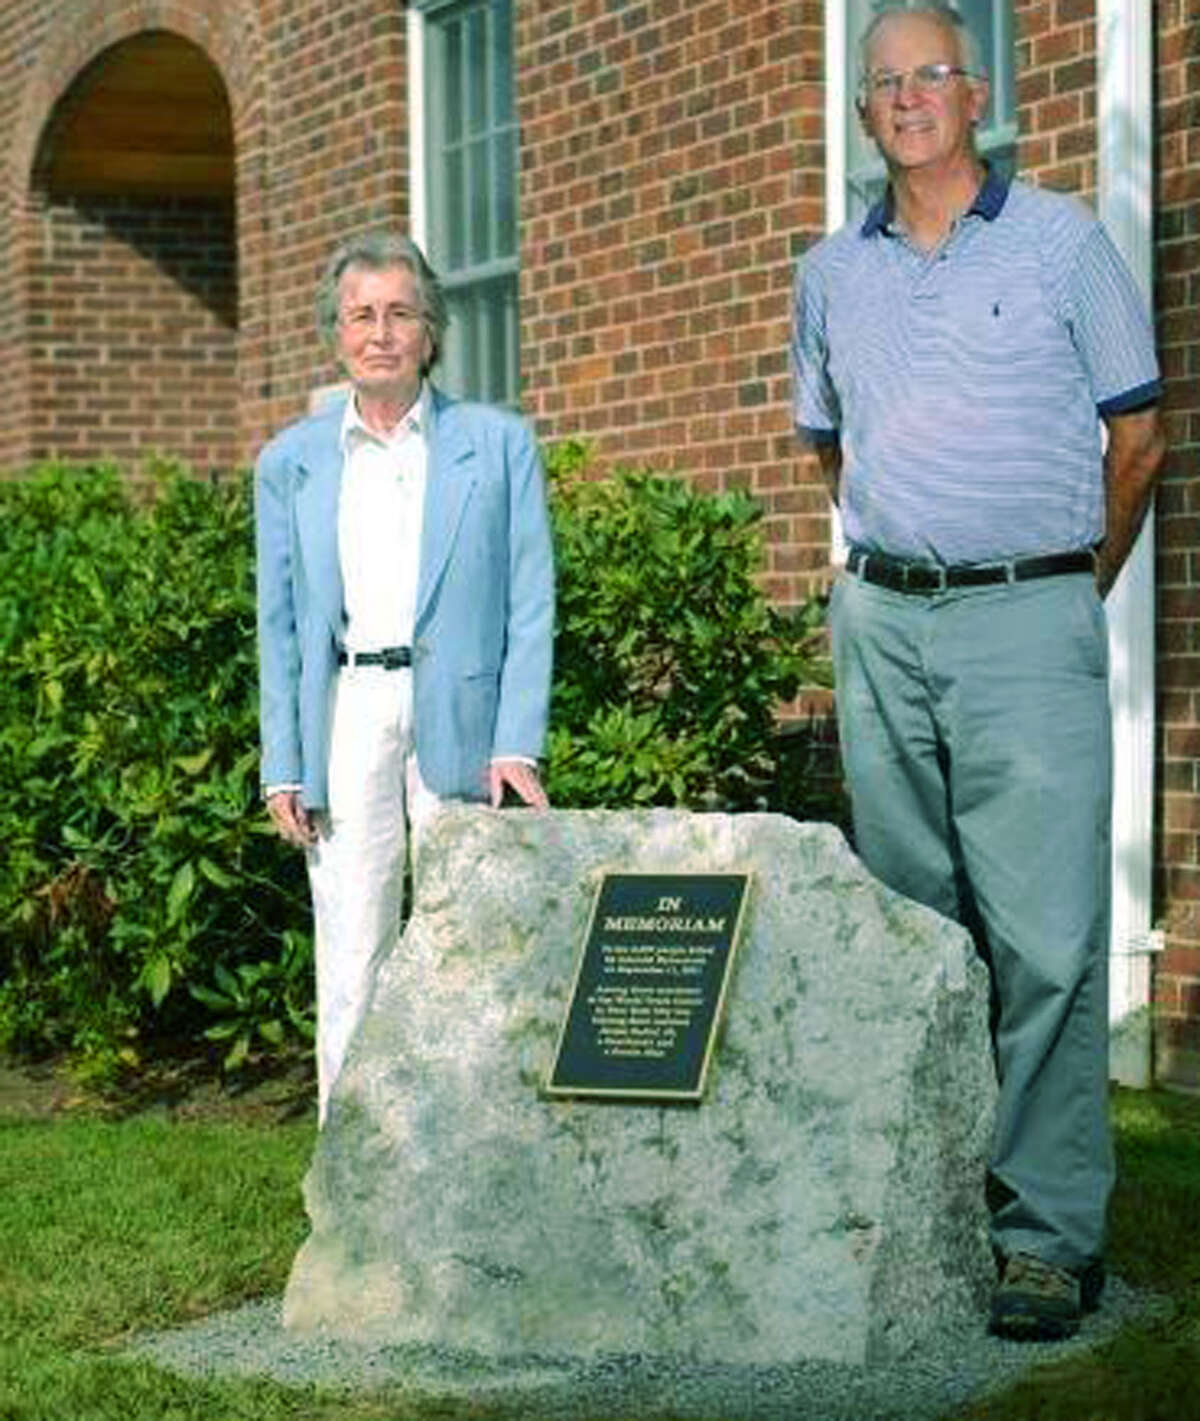 First Selectman Bruce Adams and Selectwoman Susi Williams pose proudly with a newly dedicated 9/11 memorial at Kent Town Hall. September 2014